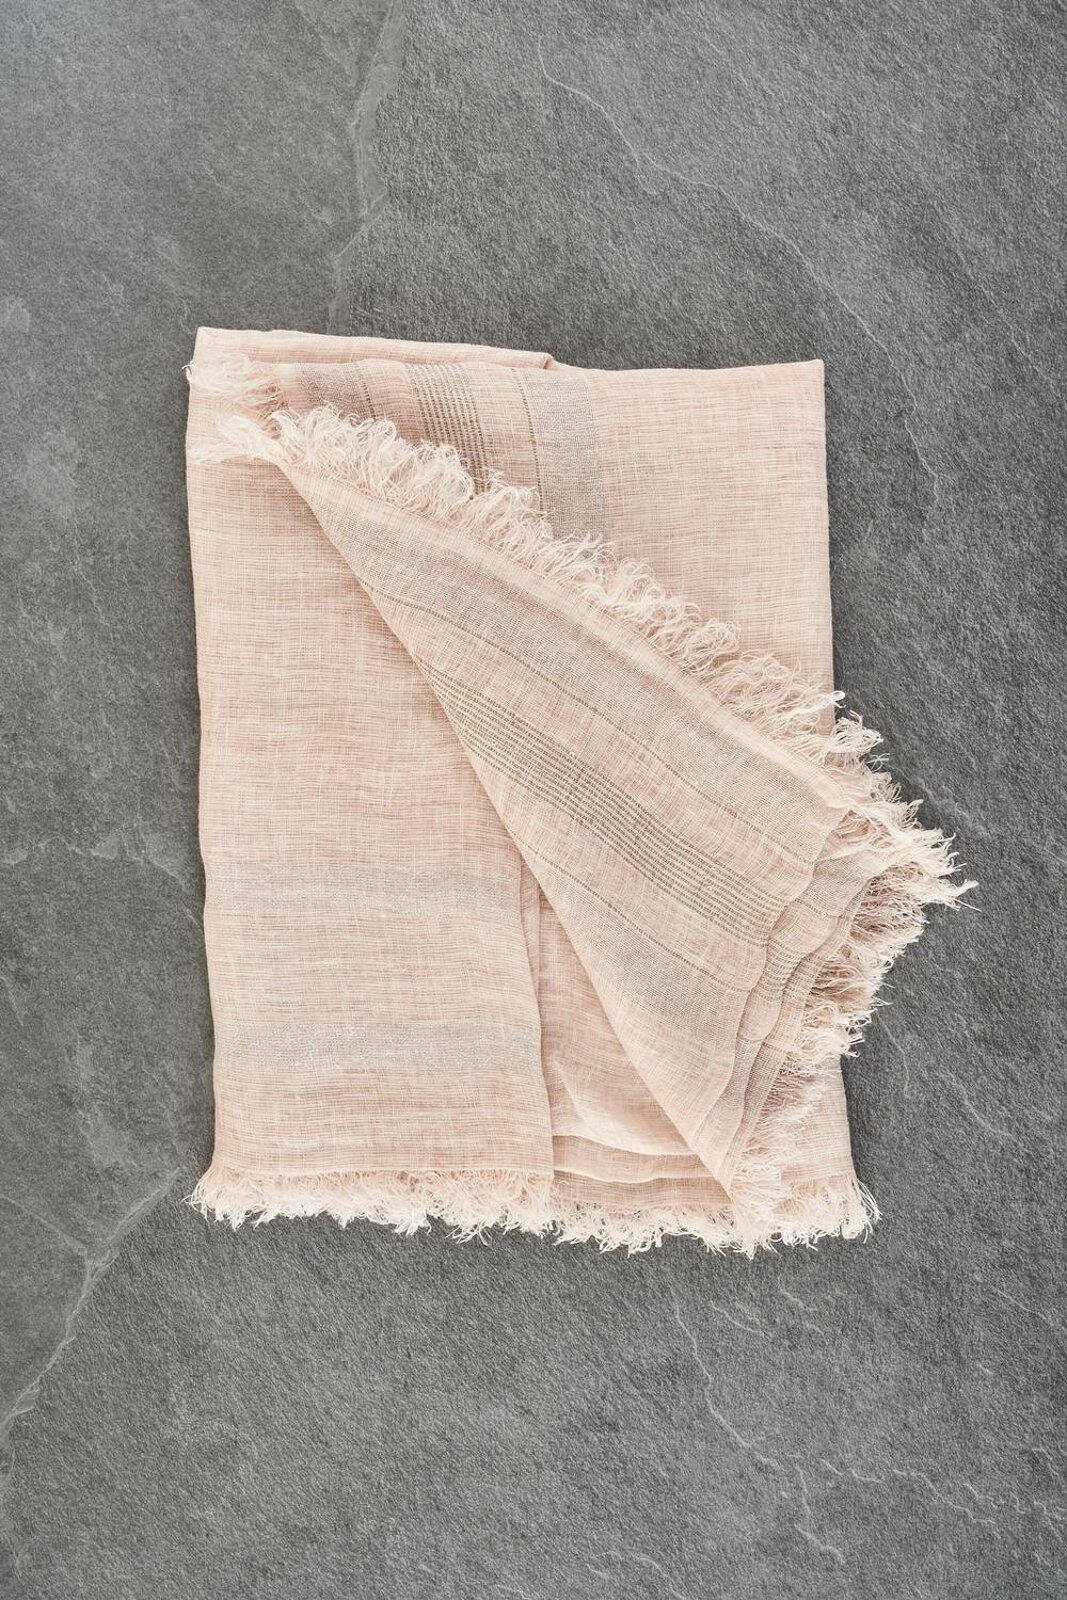 Lightweight Linen Scarf And Metallic Texture With Fringes On The Bottom. Size 140 X 140 Cm. - Peserico